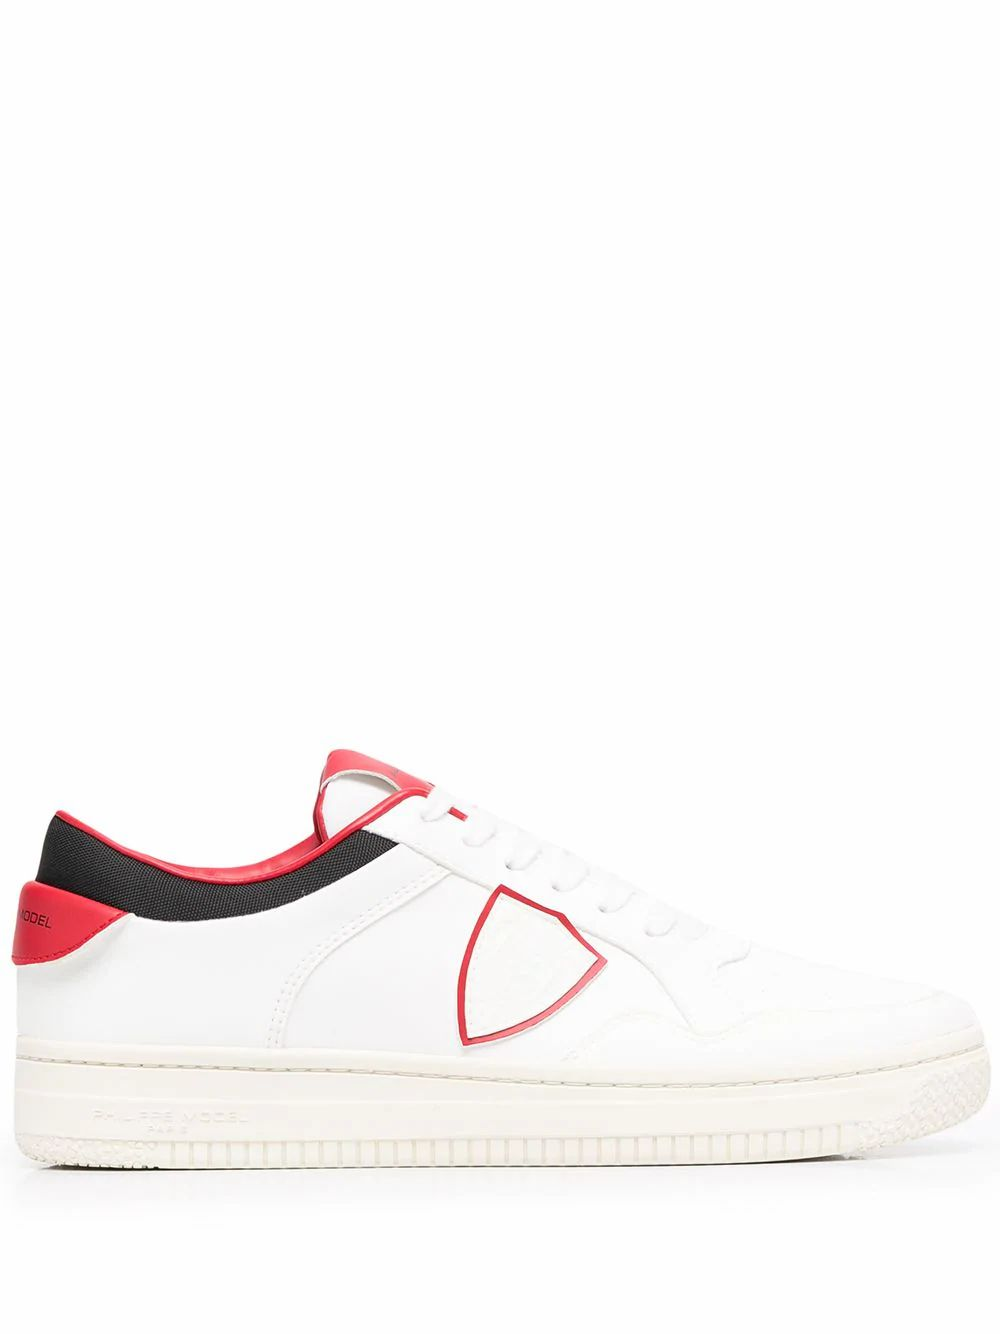 Philippe Model Sneakers PHILIPPE MODEL MEN'S LYLUBL03 WHITE LEATHER SNEAKERS